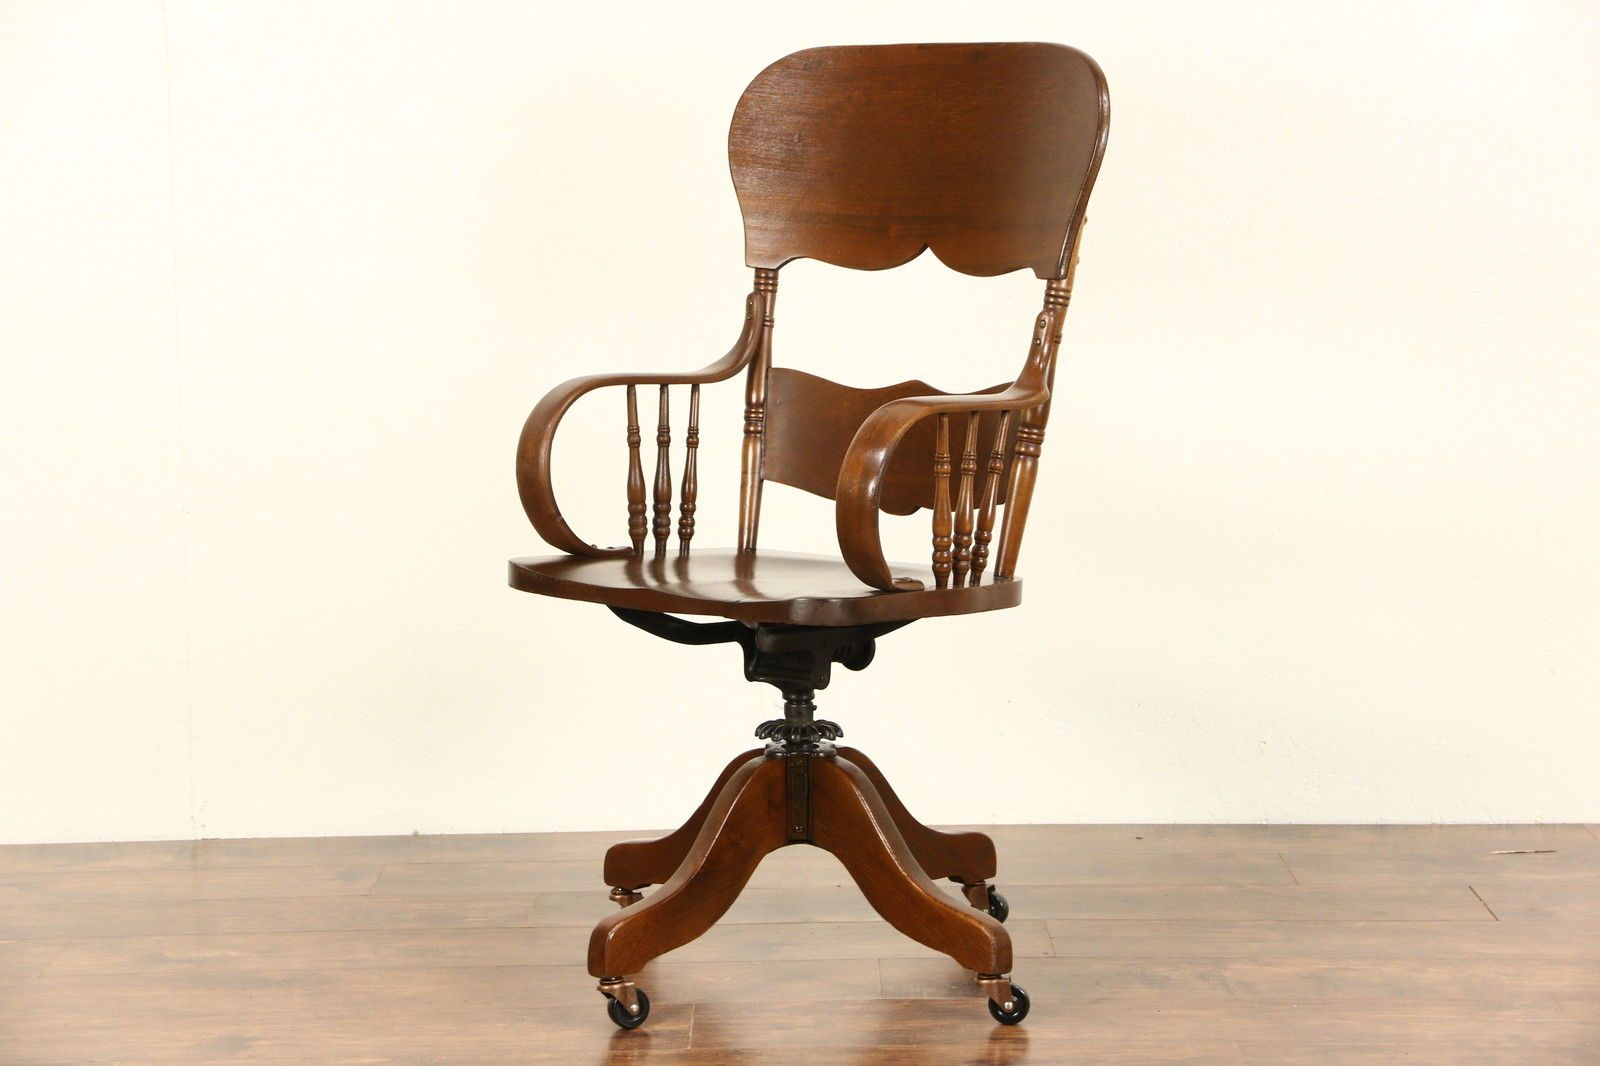 A Tall Victorian 1900 Era Swivel Desk Chair Was Made For A Tall Person.  Solid Oak And Ash, This Antique American Made Armchair Is Completely.